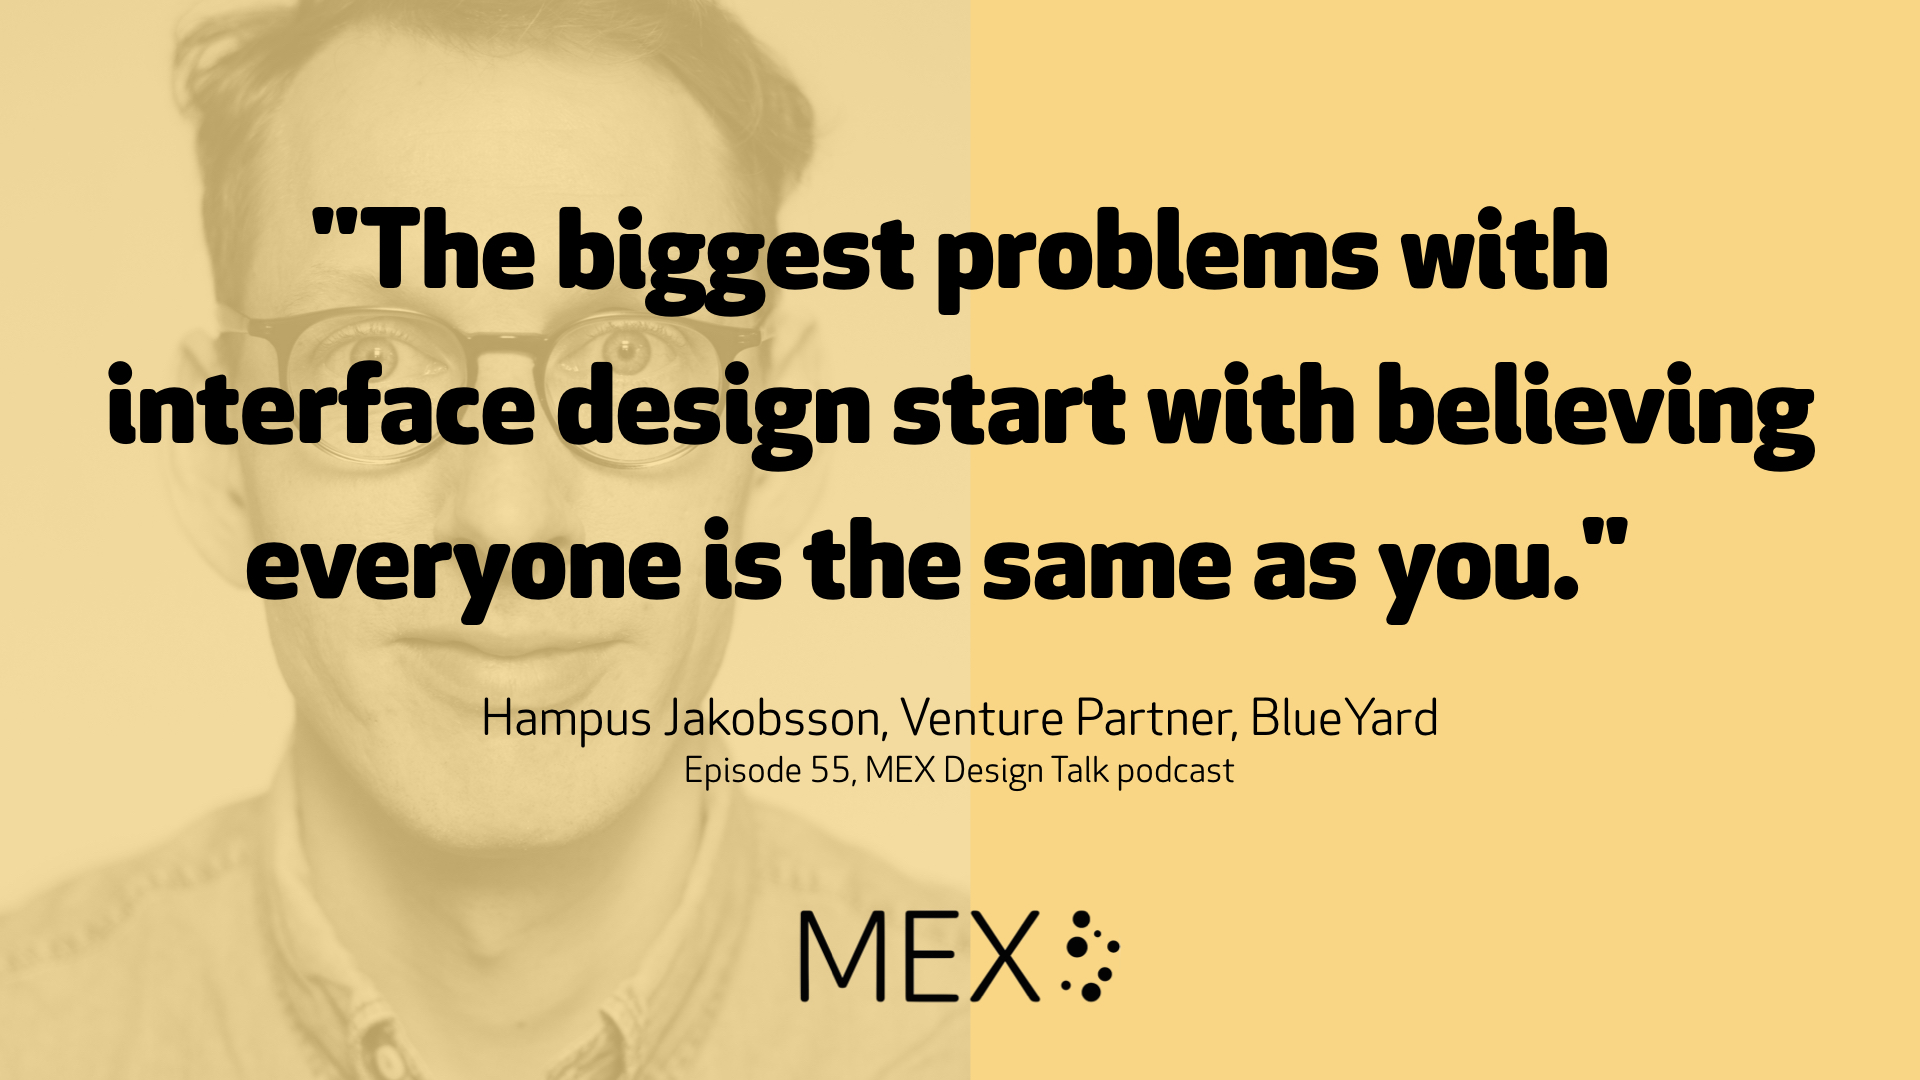 """The biggest problems with interface design start with believing everyone is the same as you."" Hampus Jakobsson, Venture Partner, BlueYard Episode 55, MEX Design Talk podcast"